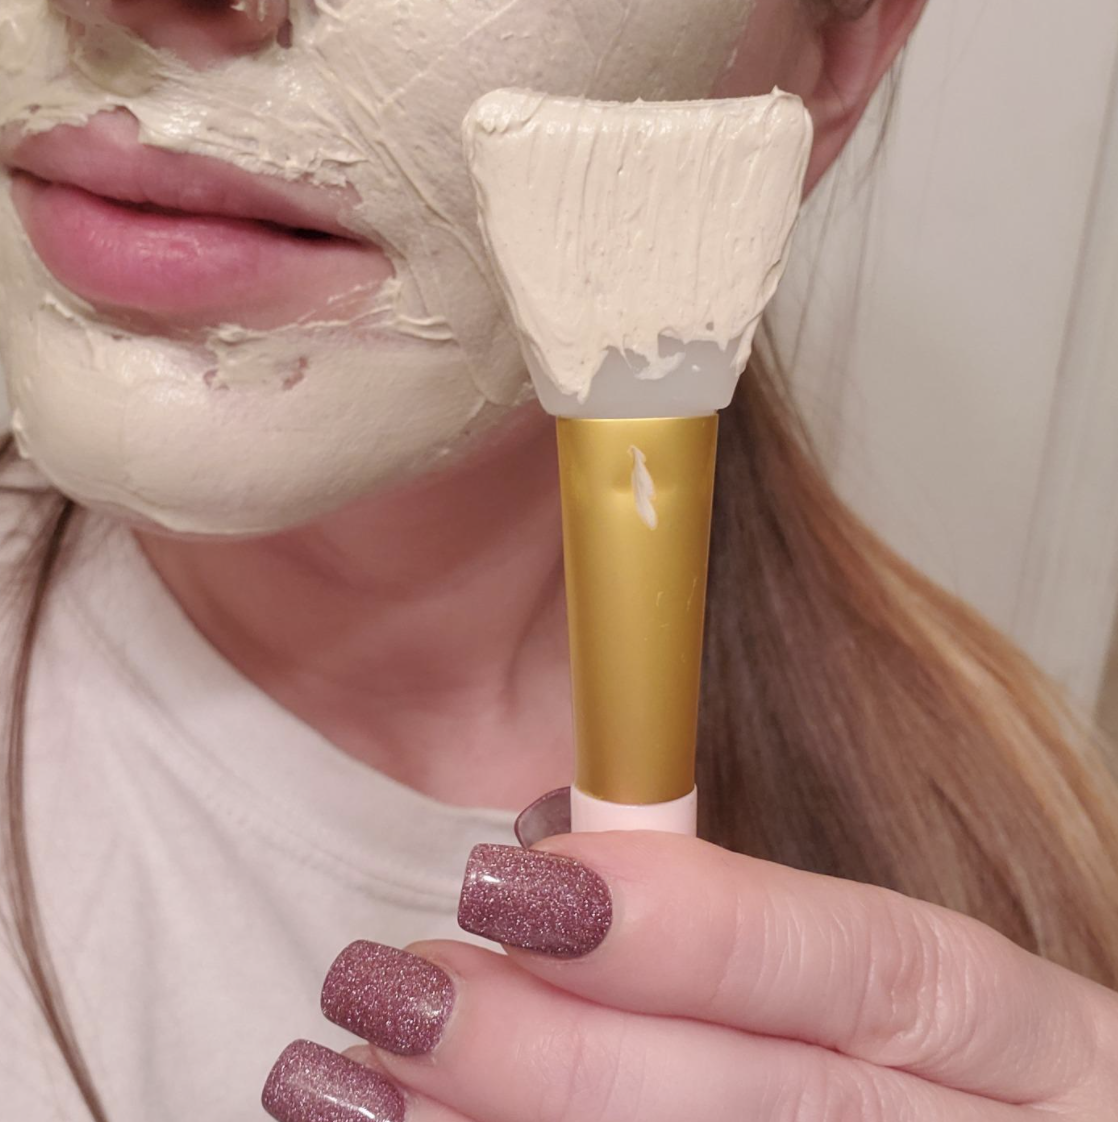 Reviewer holding the silicone brush up to their face that's covered in a mask